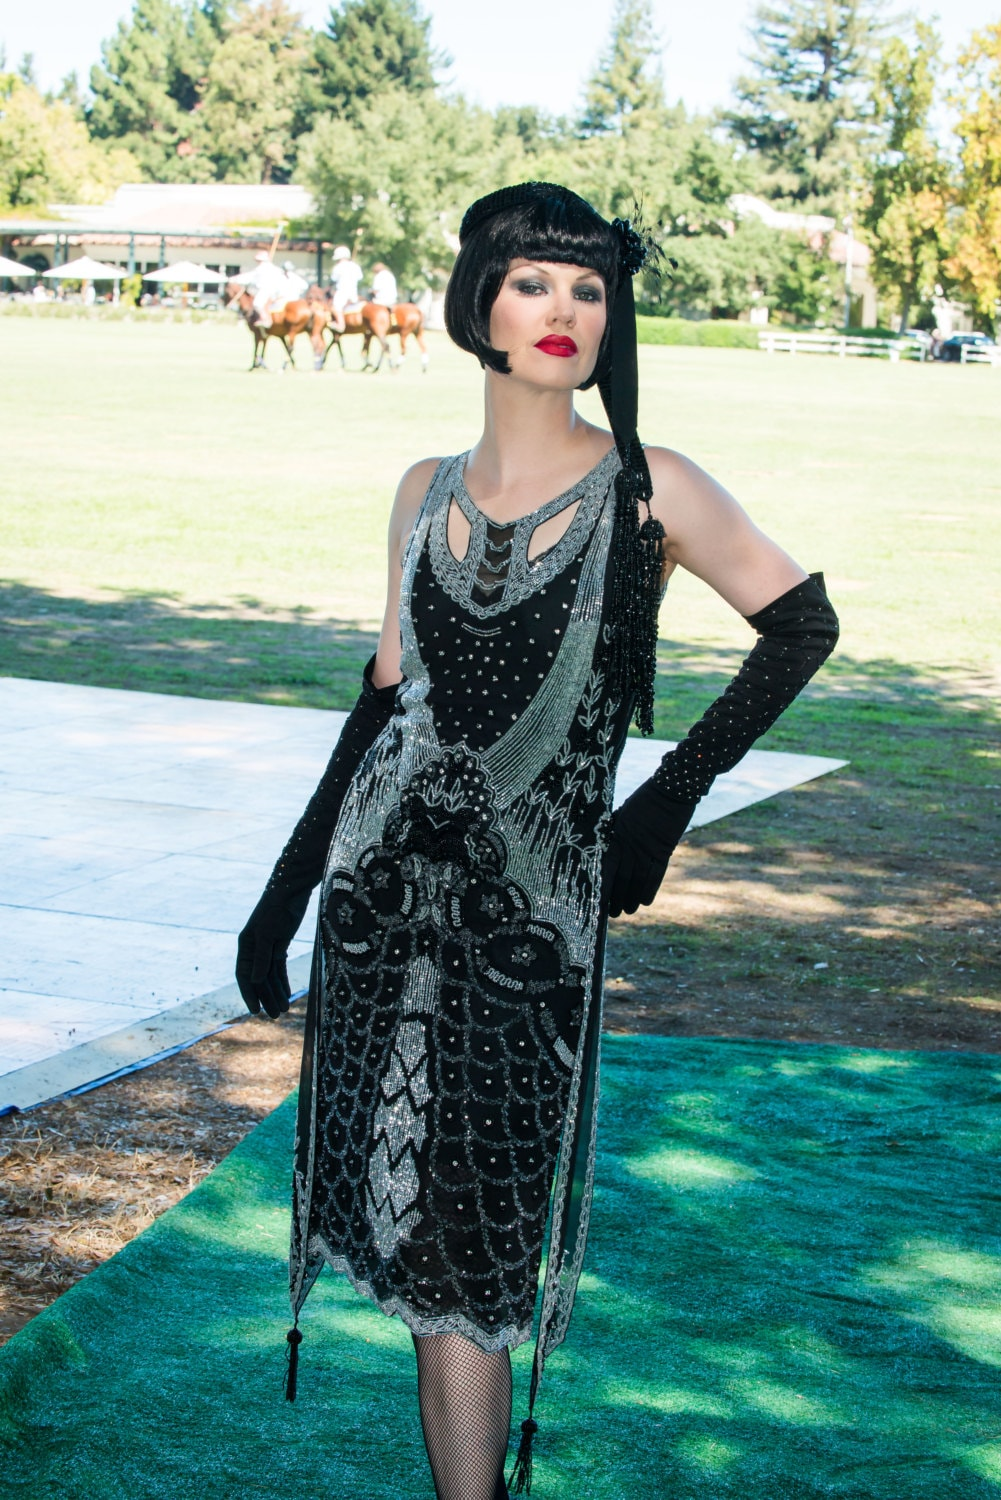 Downton Abbey Inspired Dresses 1920s Style Edwardian Dress $495.00 AT vintagedancer.com